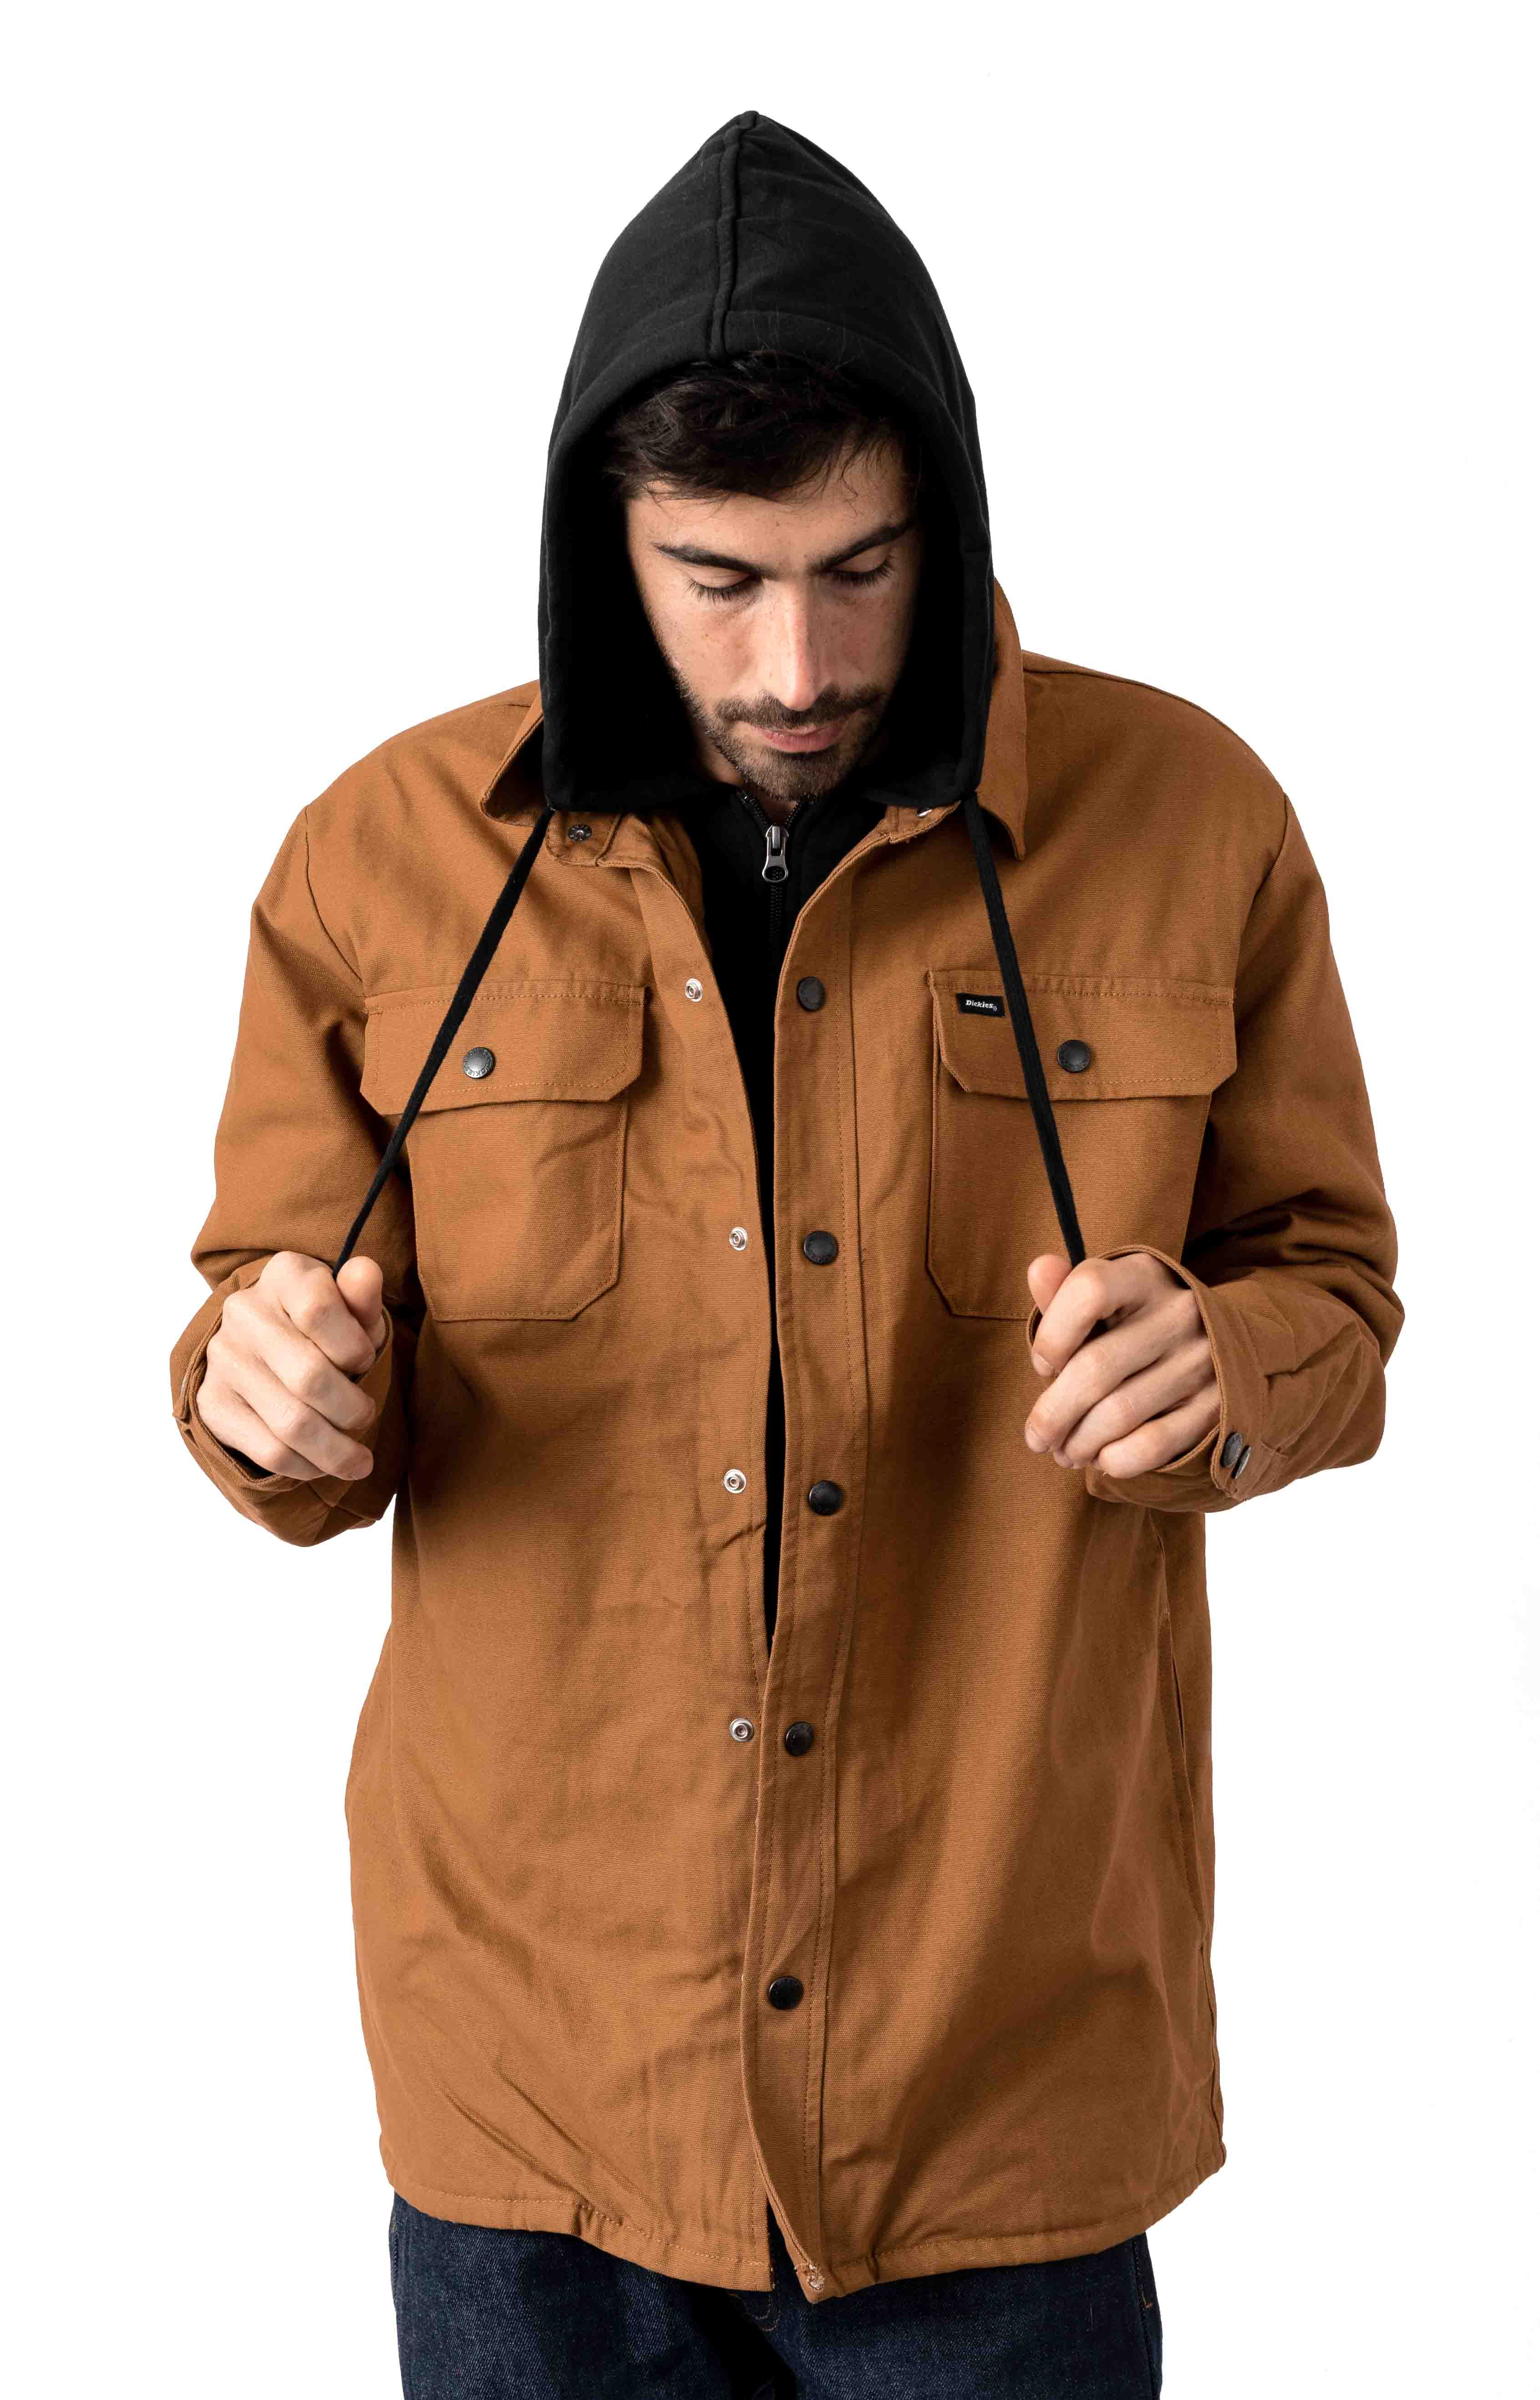 (TJ500BD) Duck Shirt Jacket w/ Fleece Hood - Brown Duck